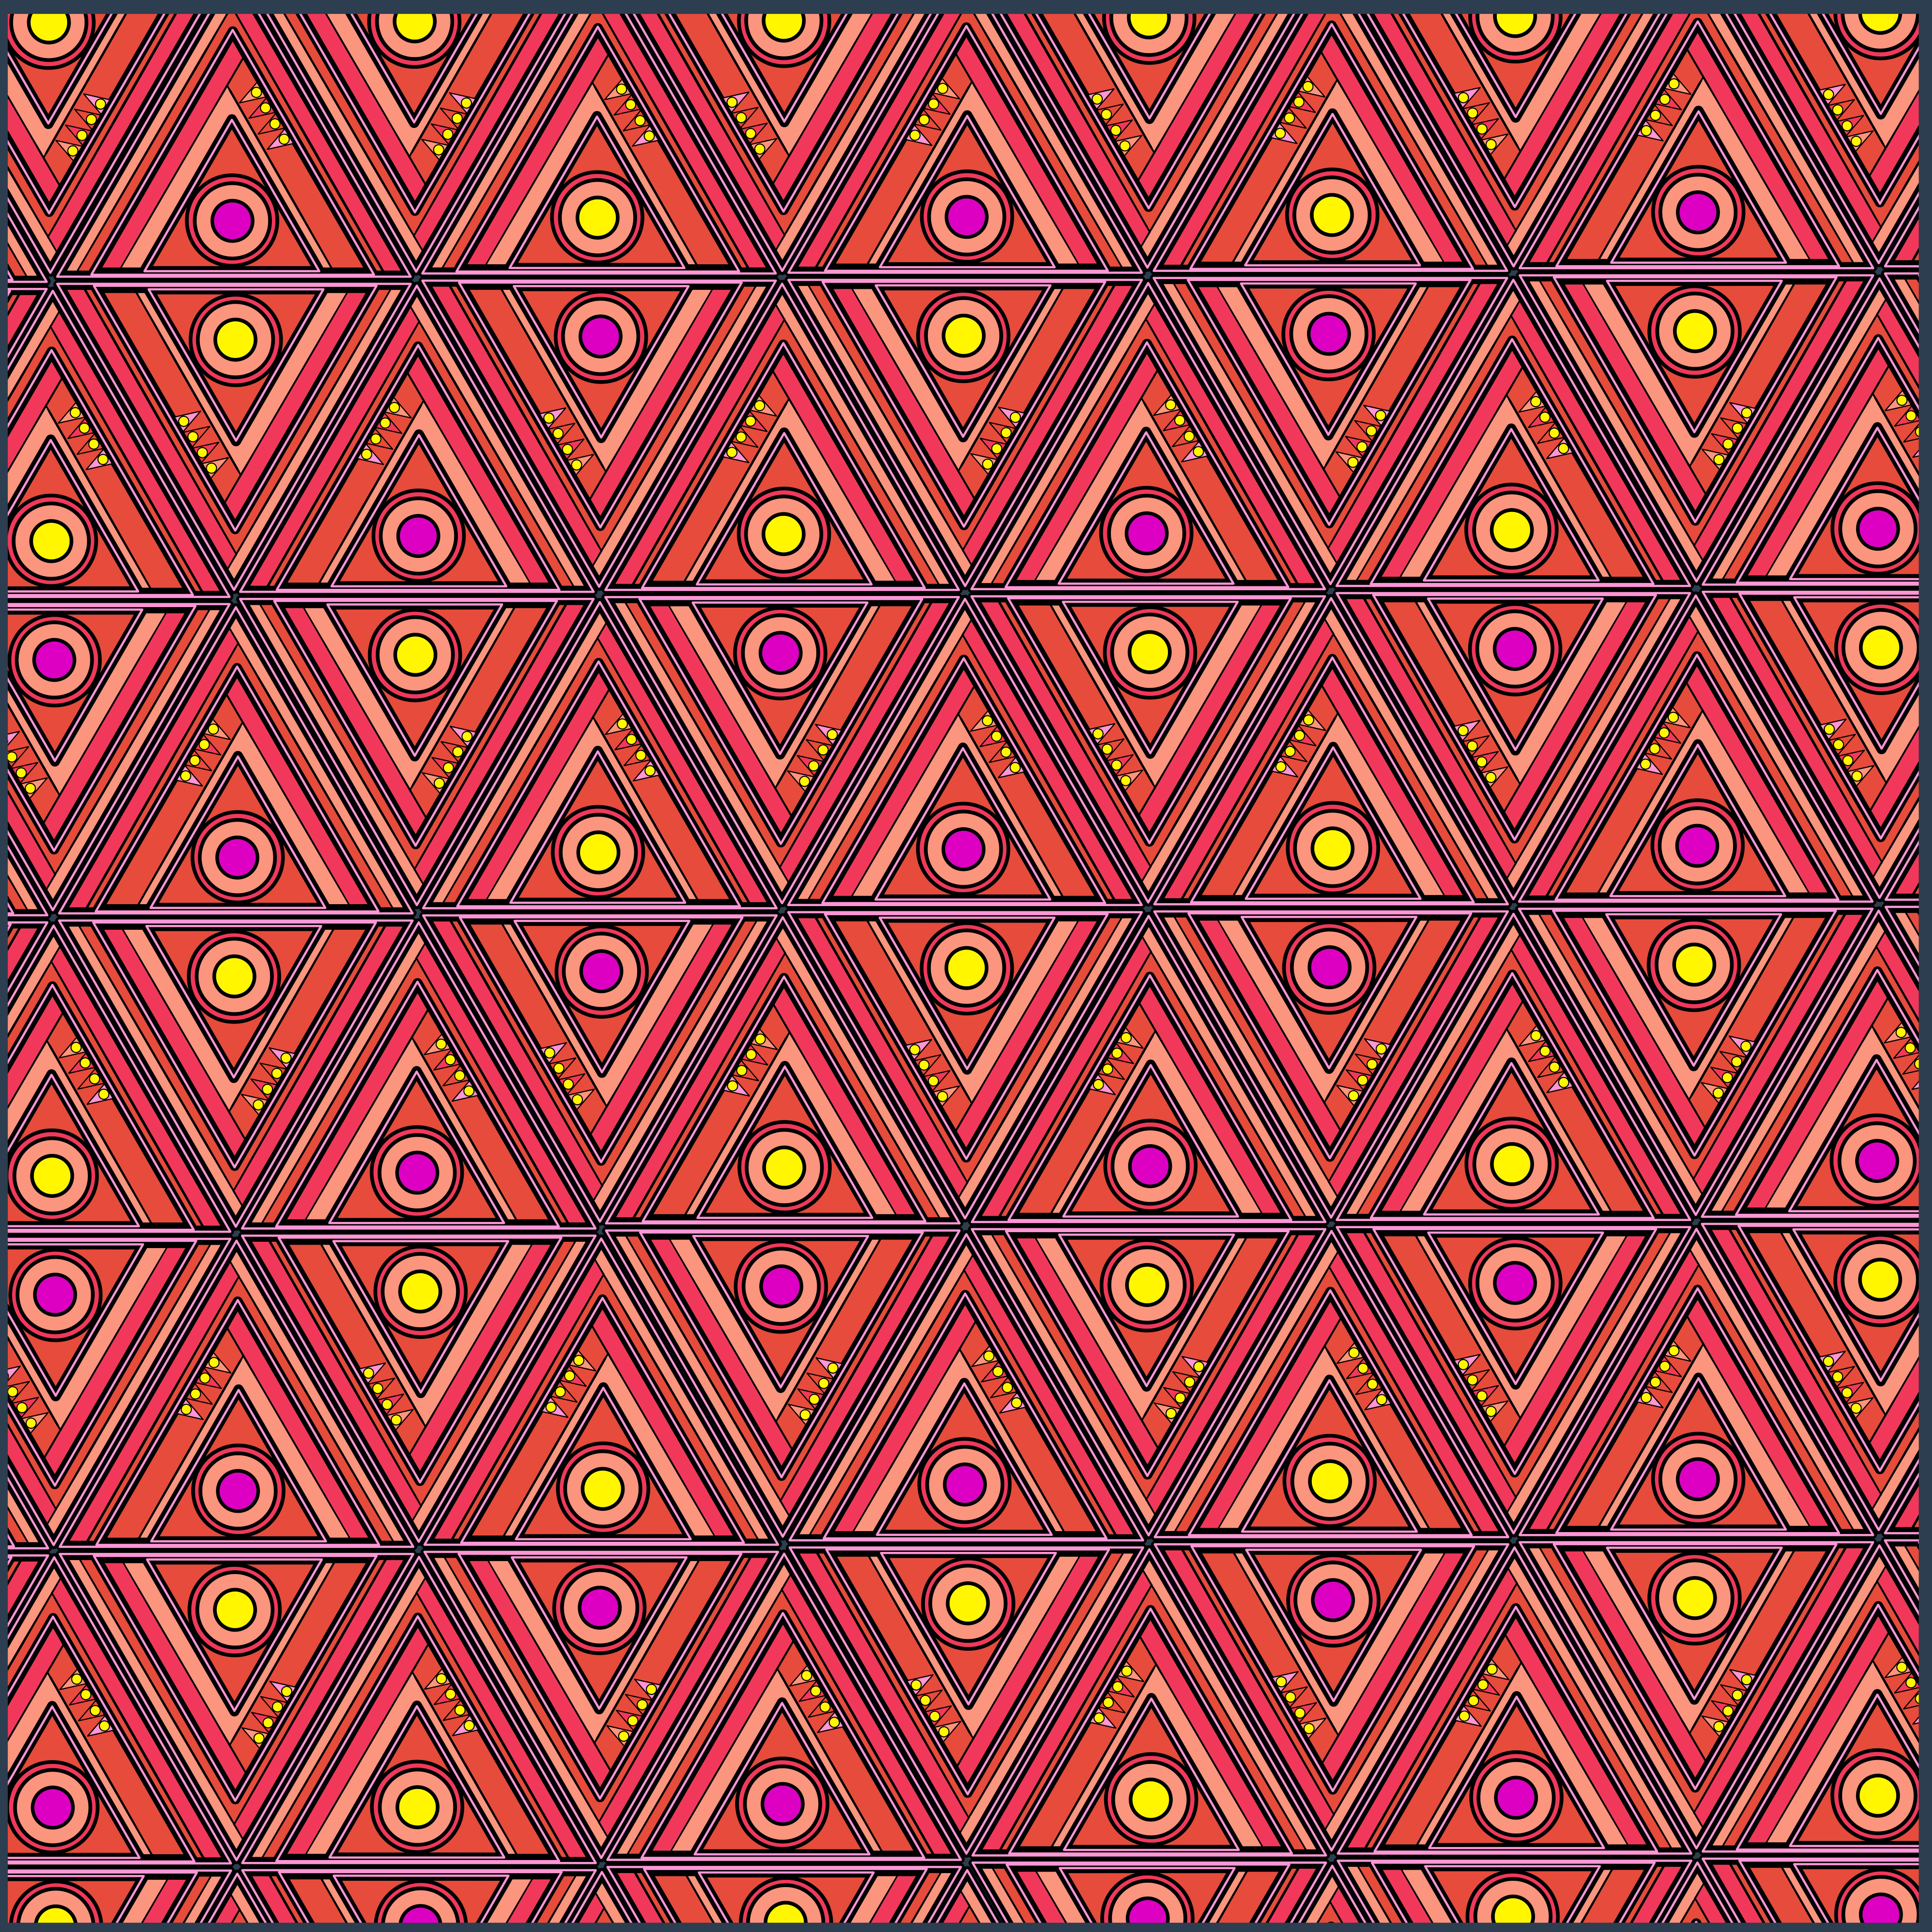 Mountains Fabric